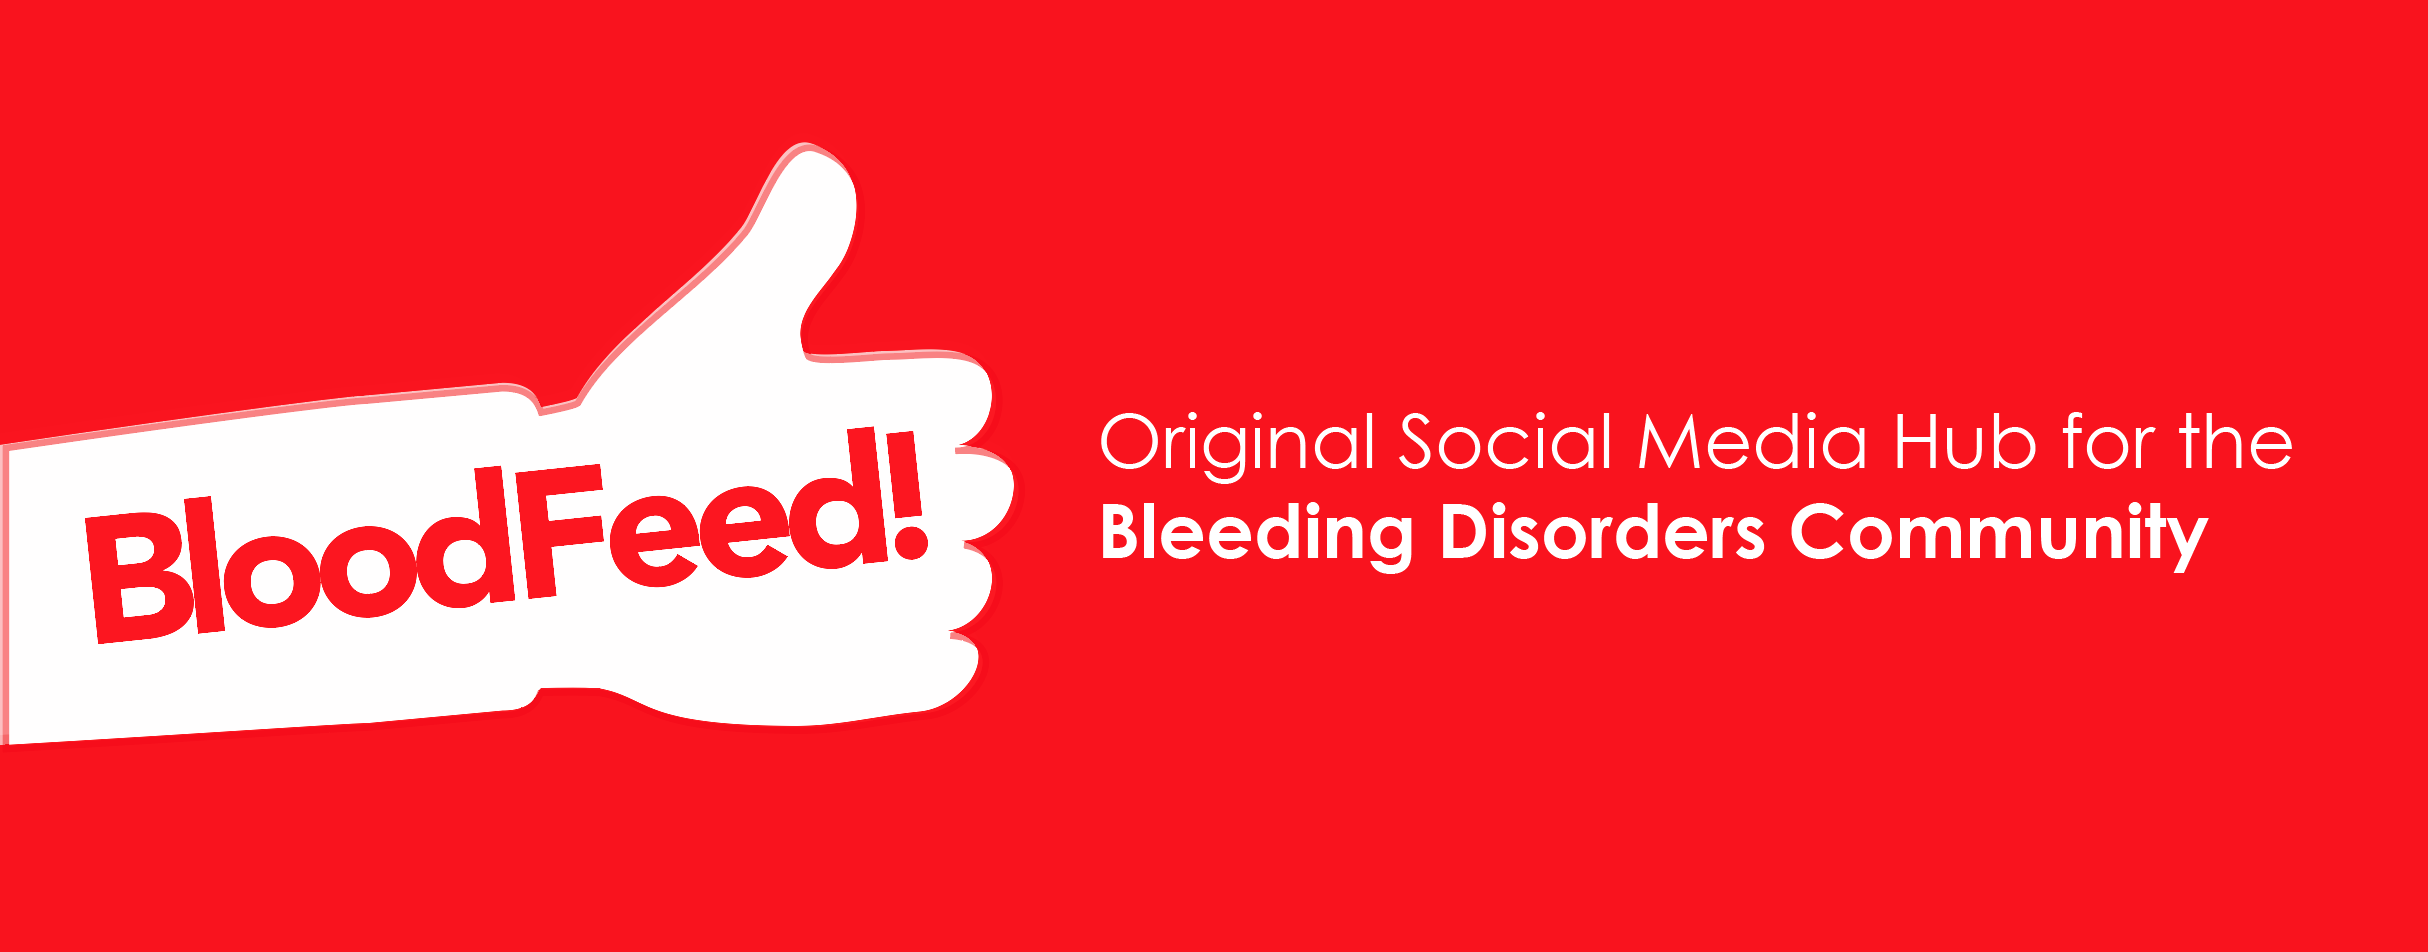 Slider 2 - bloodfeed.png